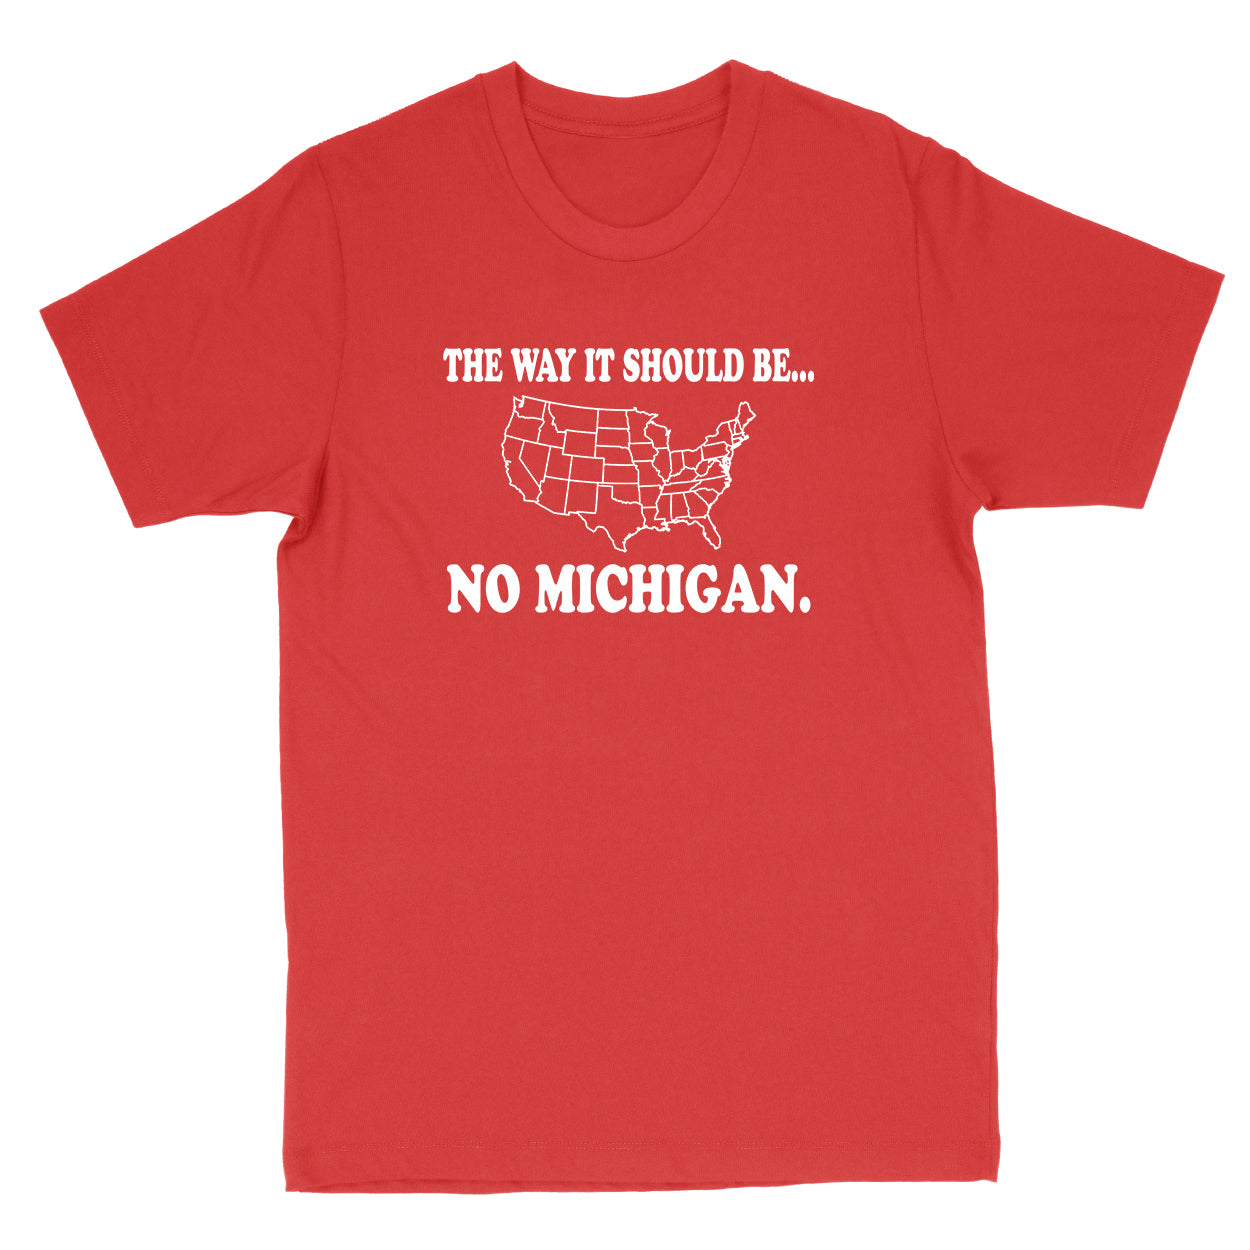 The Way It Should Be... No Michigan Men's T-Shirt - Clothe Ohio - Soft Ohio Shirts